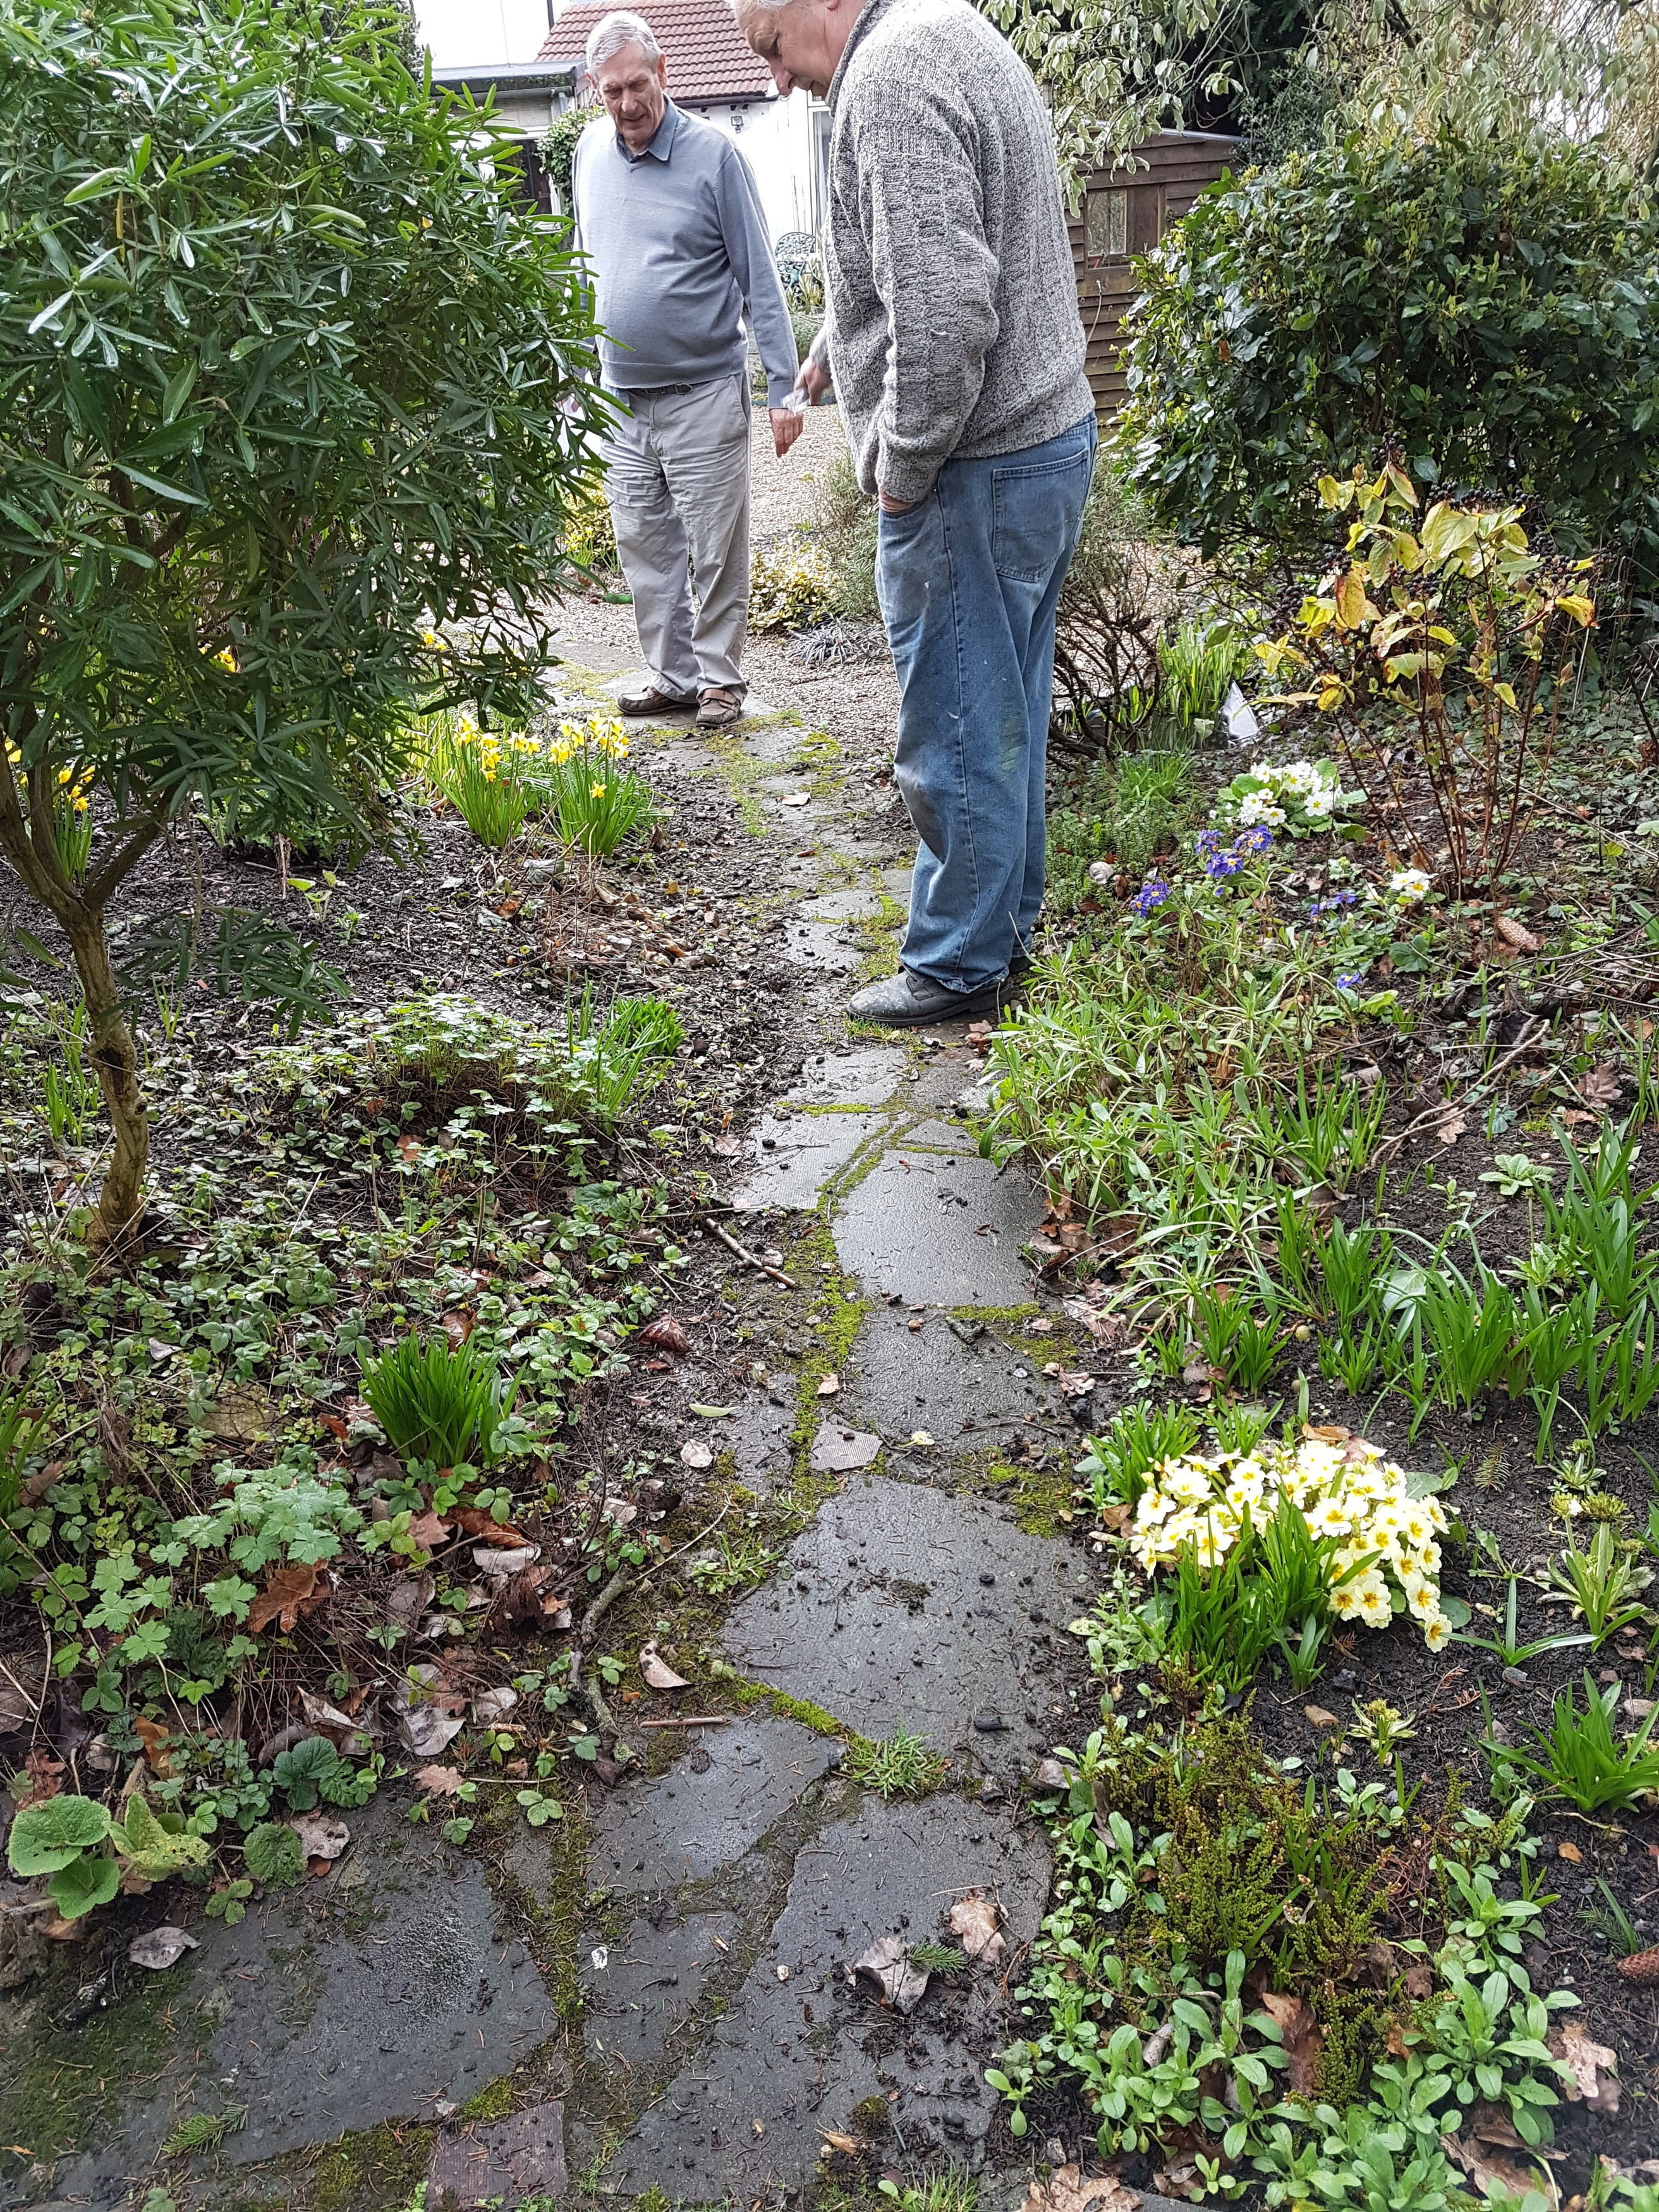 Does your garden path need a bit of TLC?